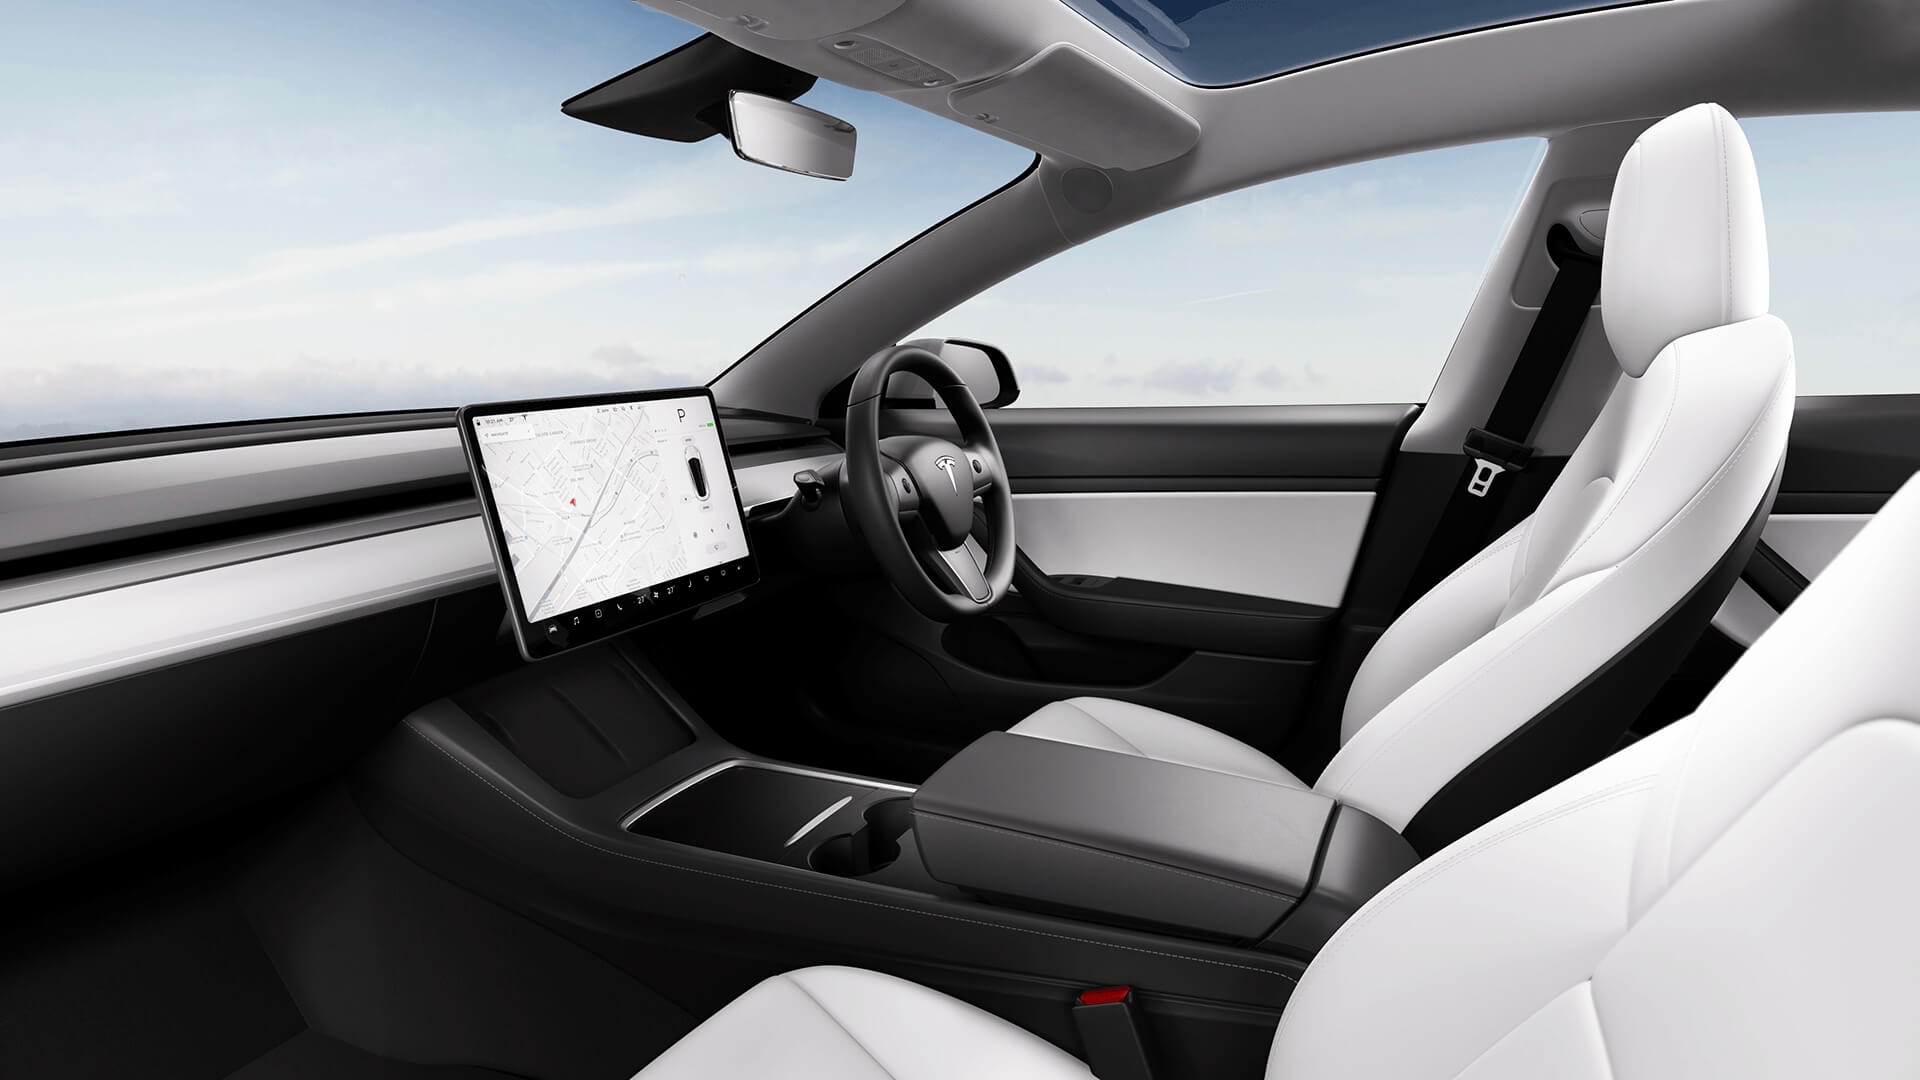 2021 Tesla Model 3 interieur